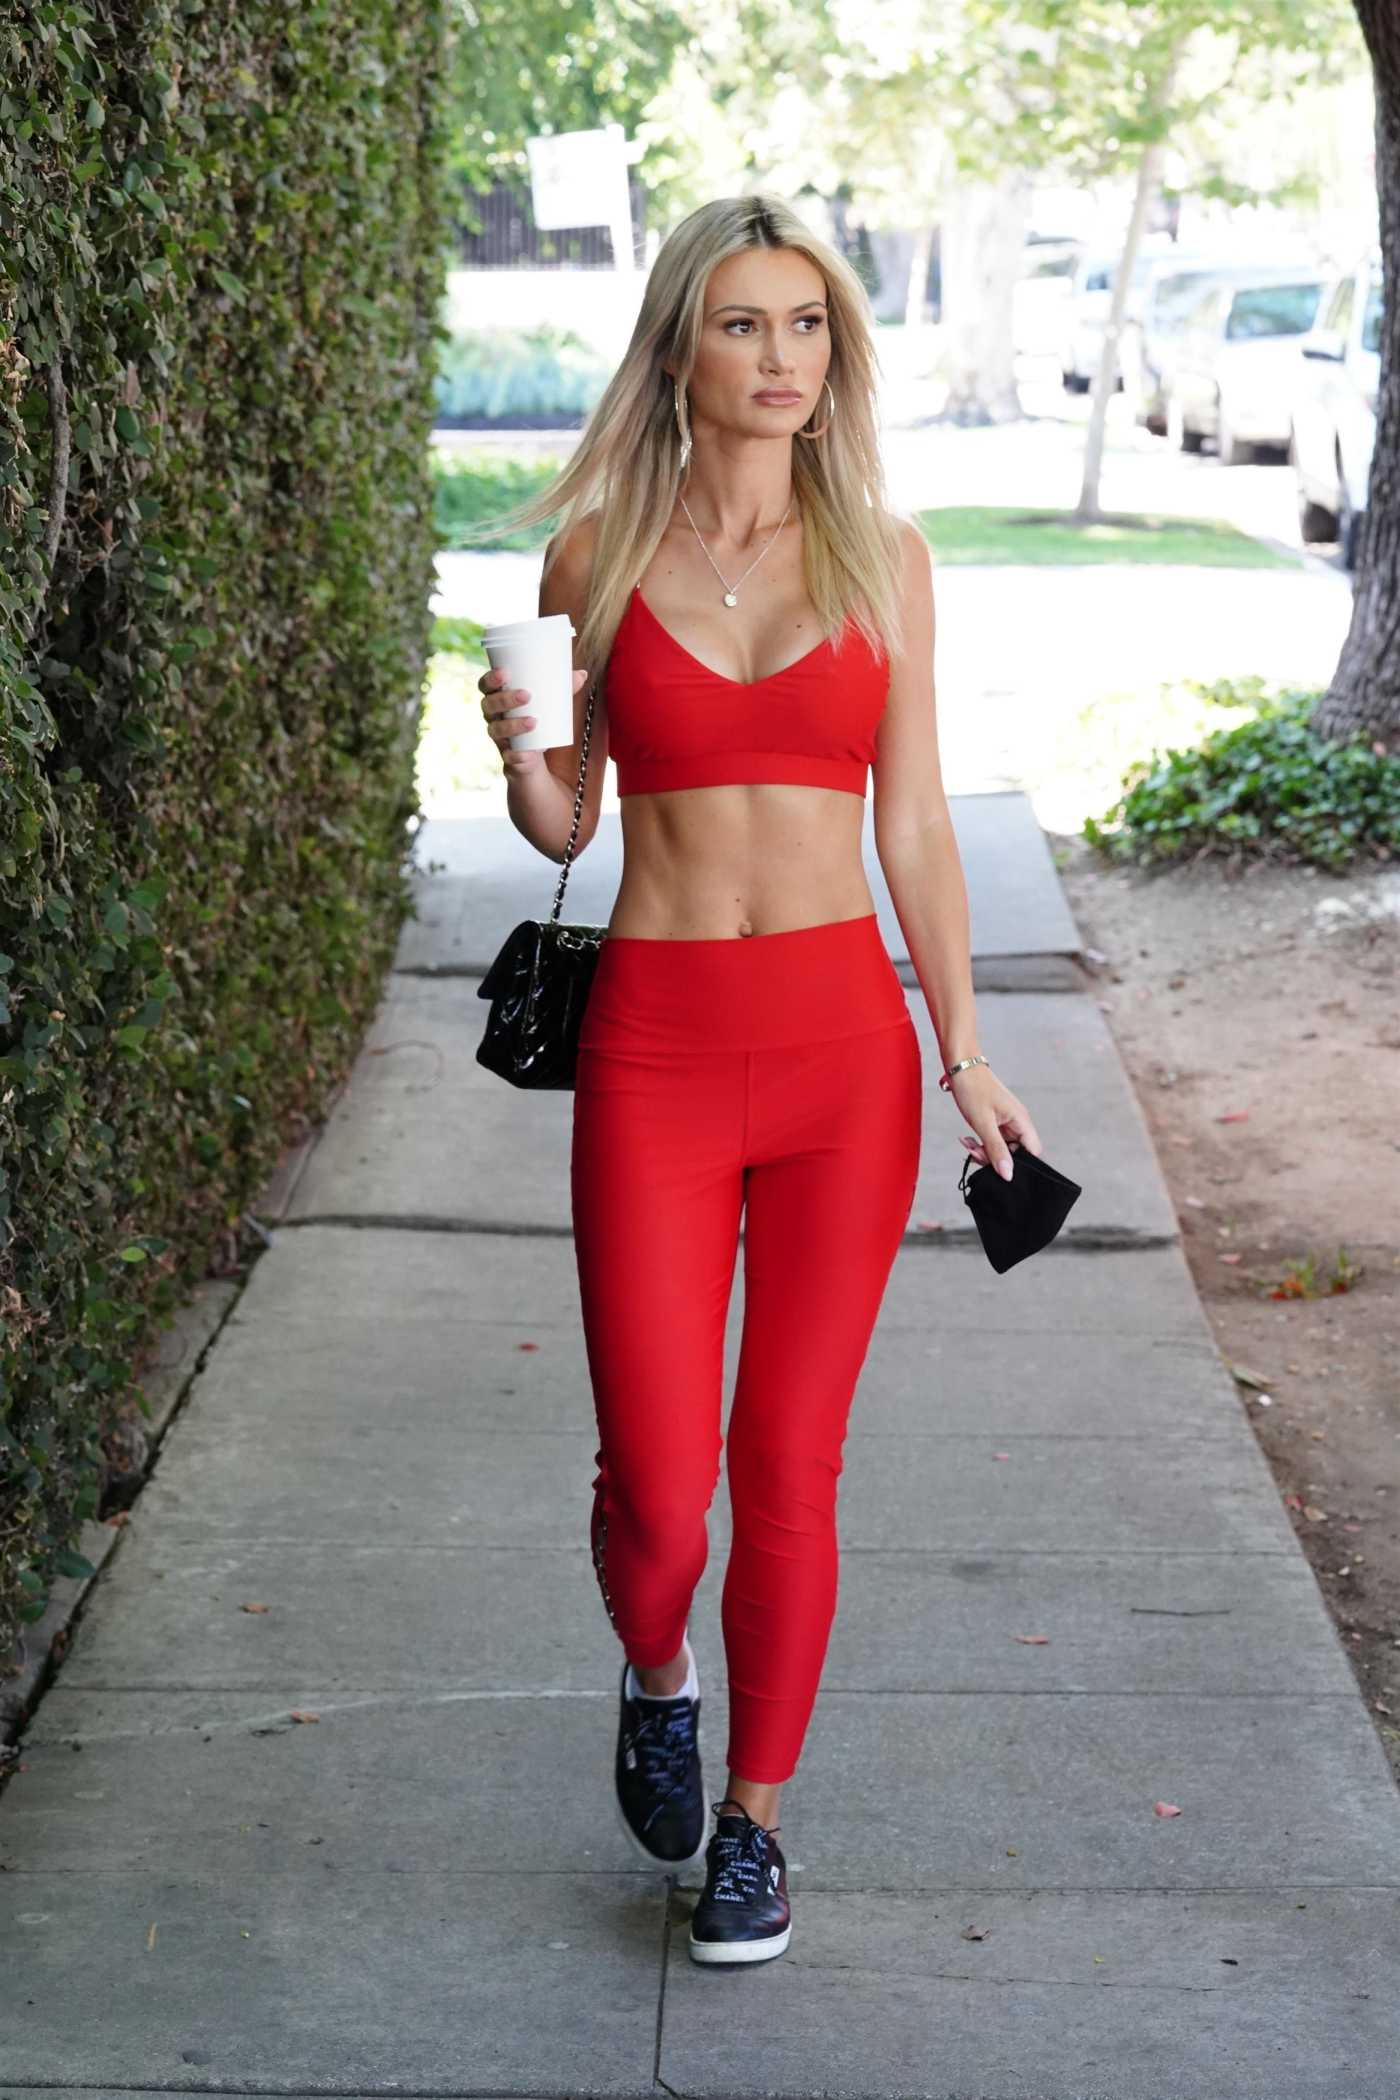 Ella Rose in a Red Sports Bra Grabs Coffee at Alfreds Coffee in West Hollywood 07/02/2020